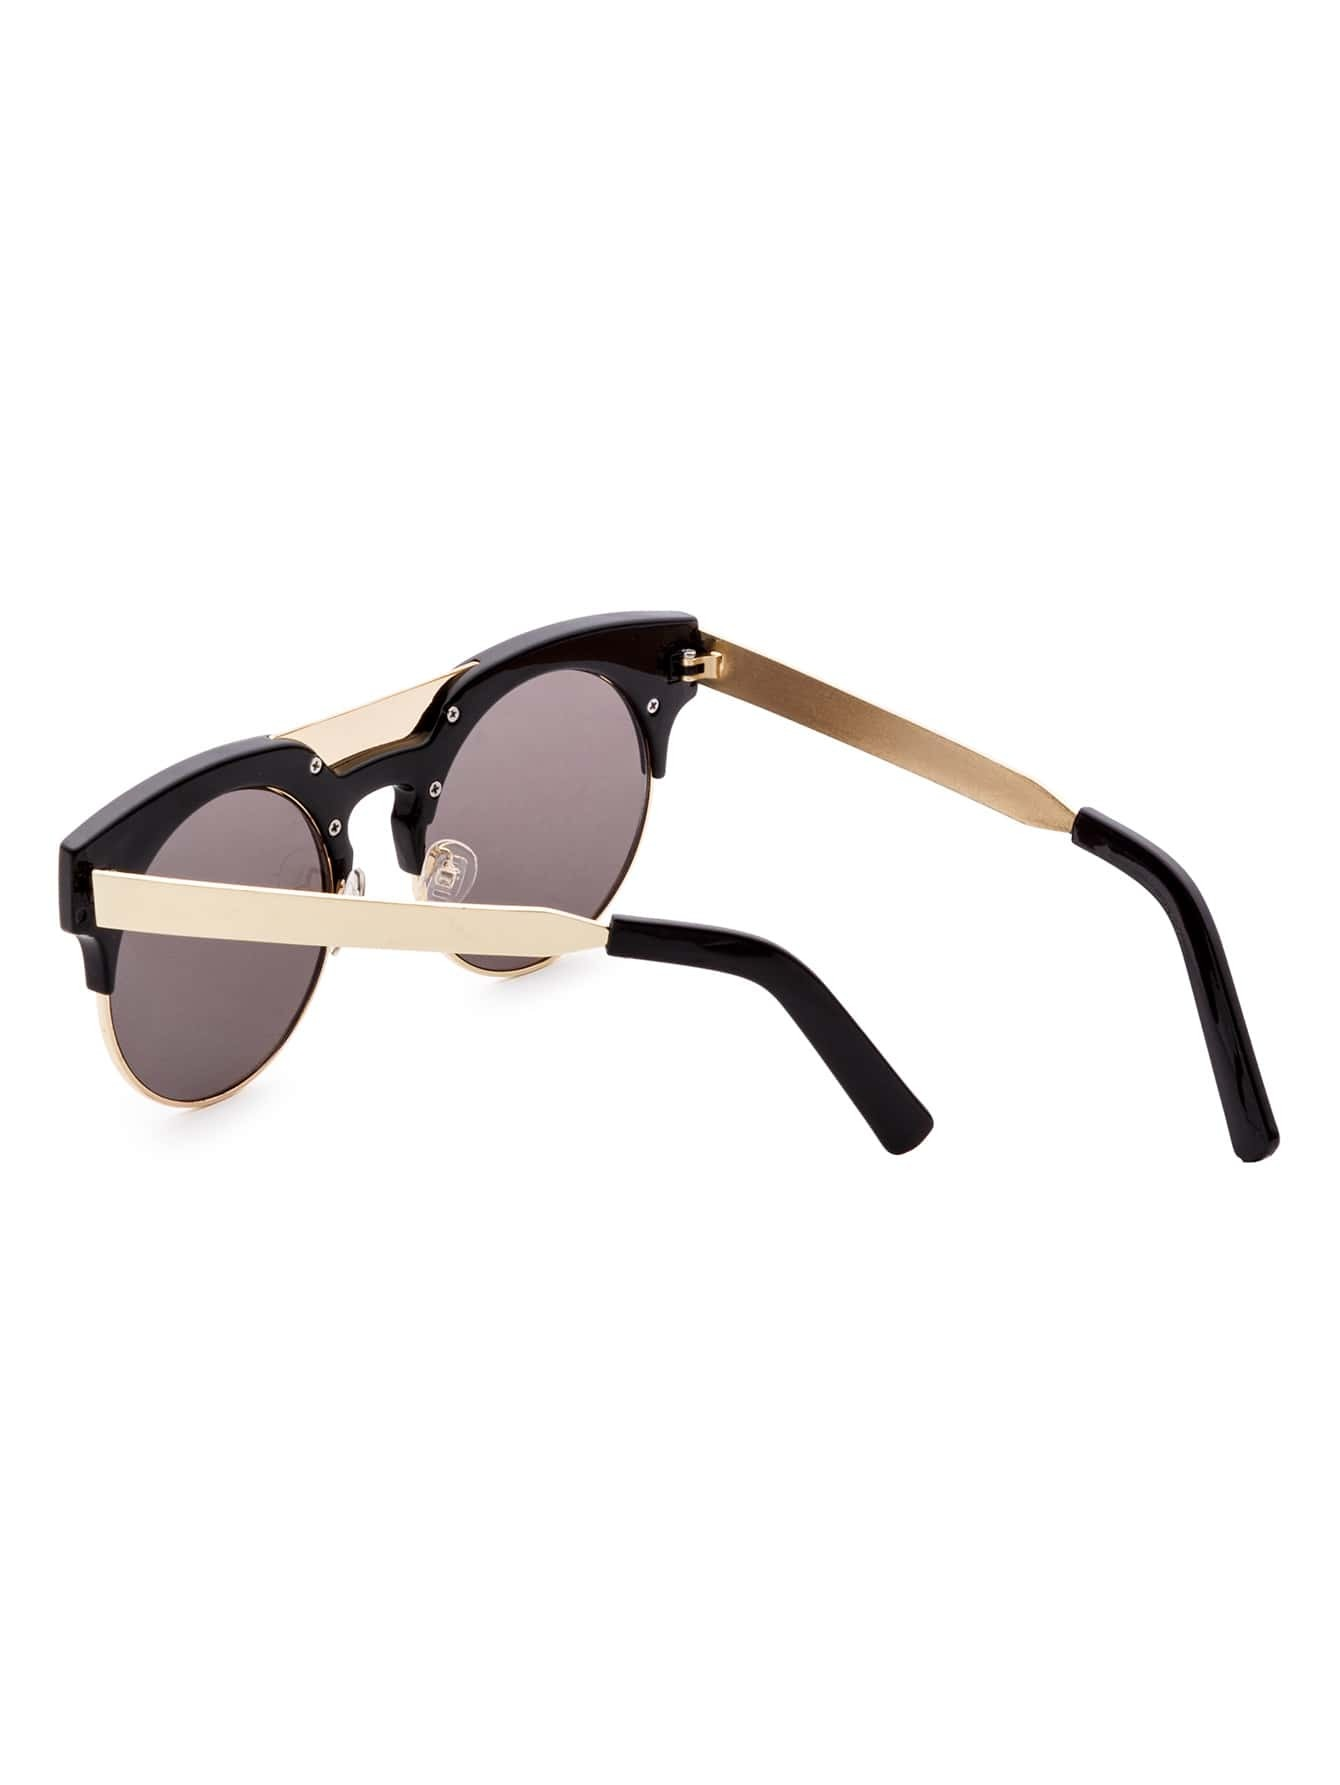 Black And Gold Frame Round Sunglasses -SheIn(Sheinside)